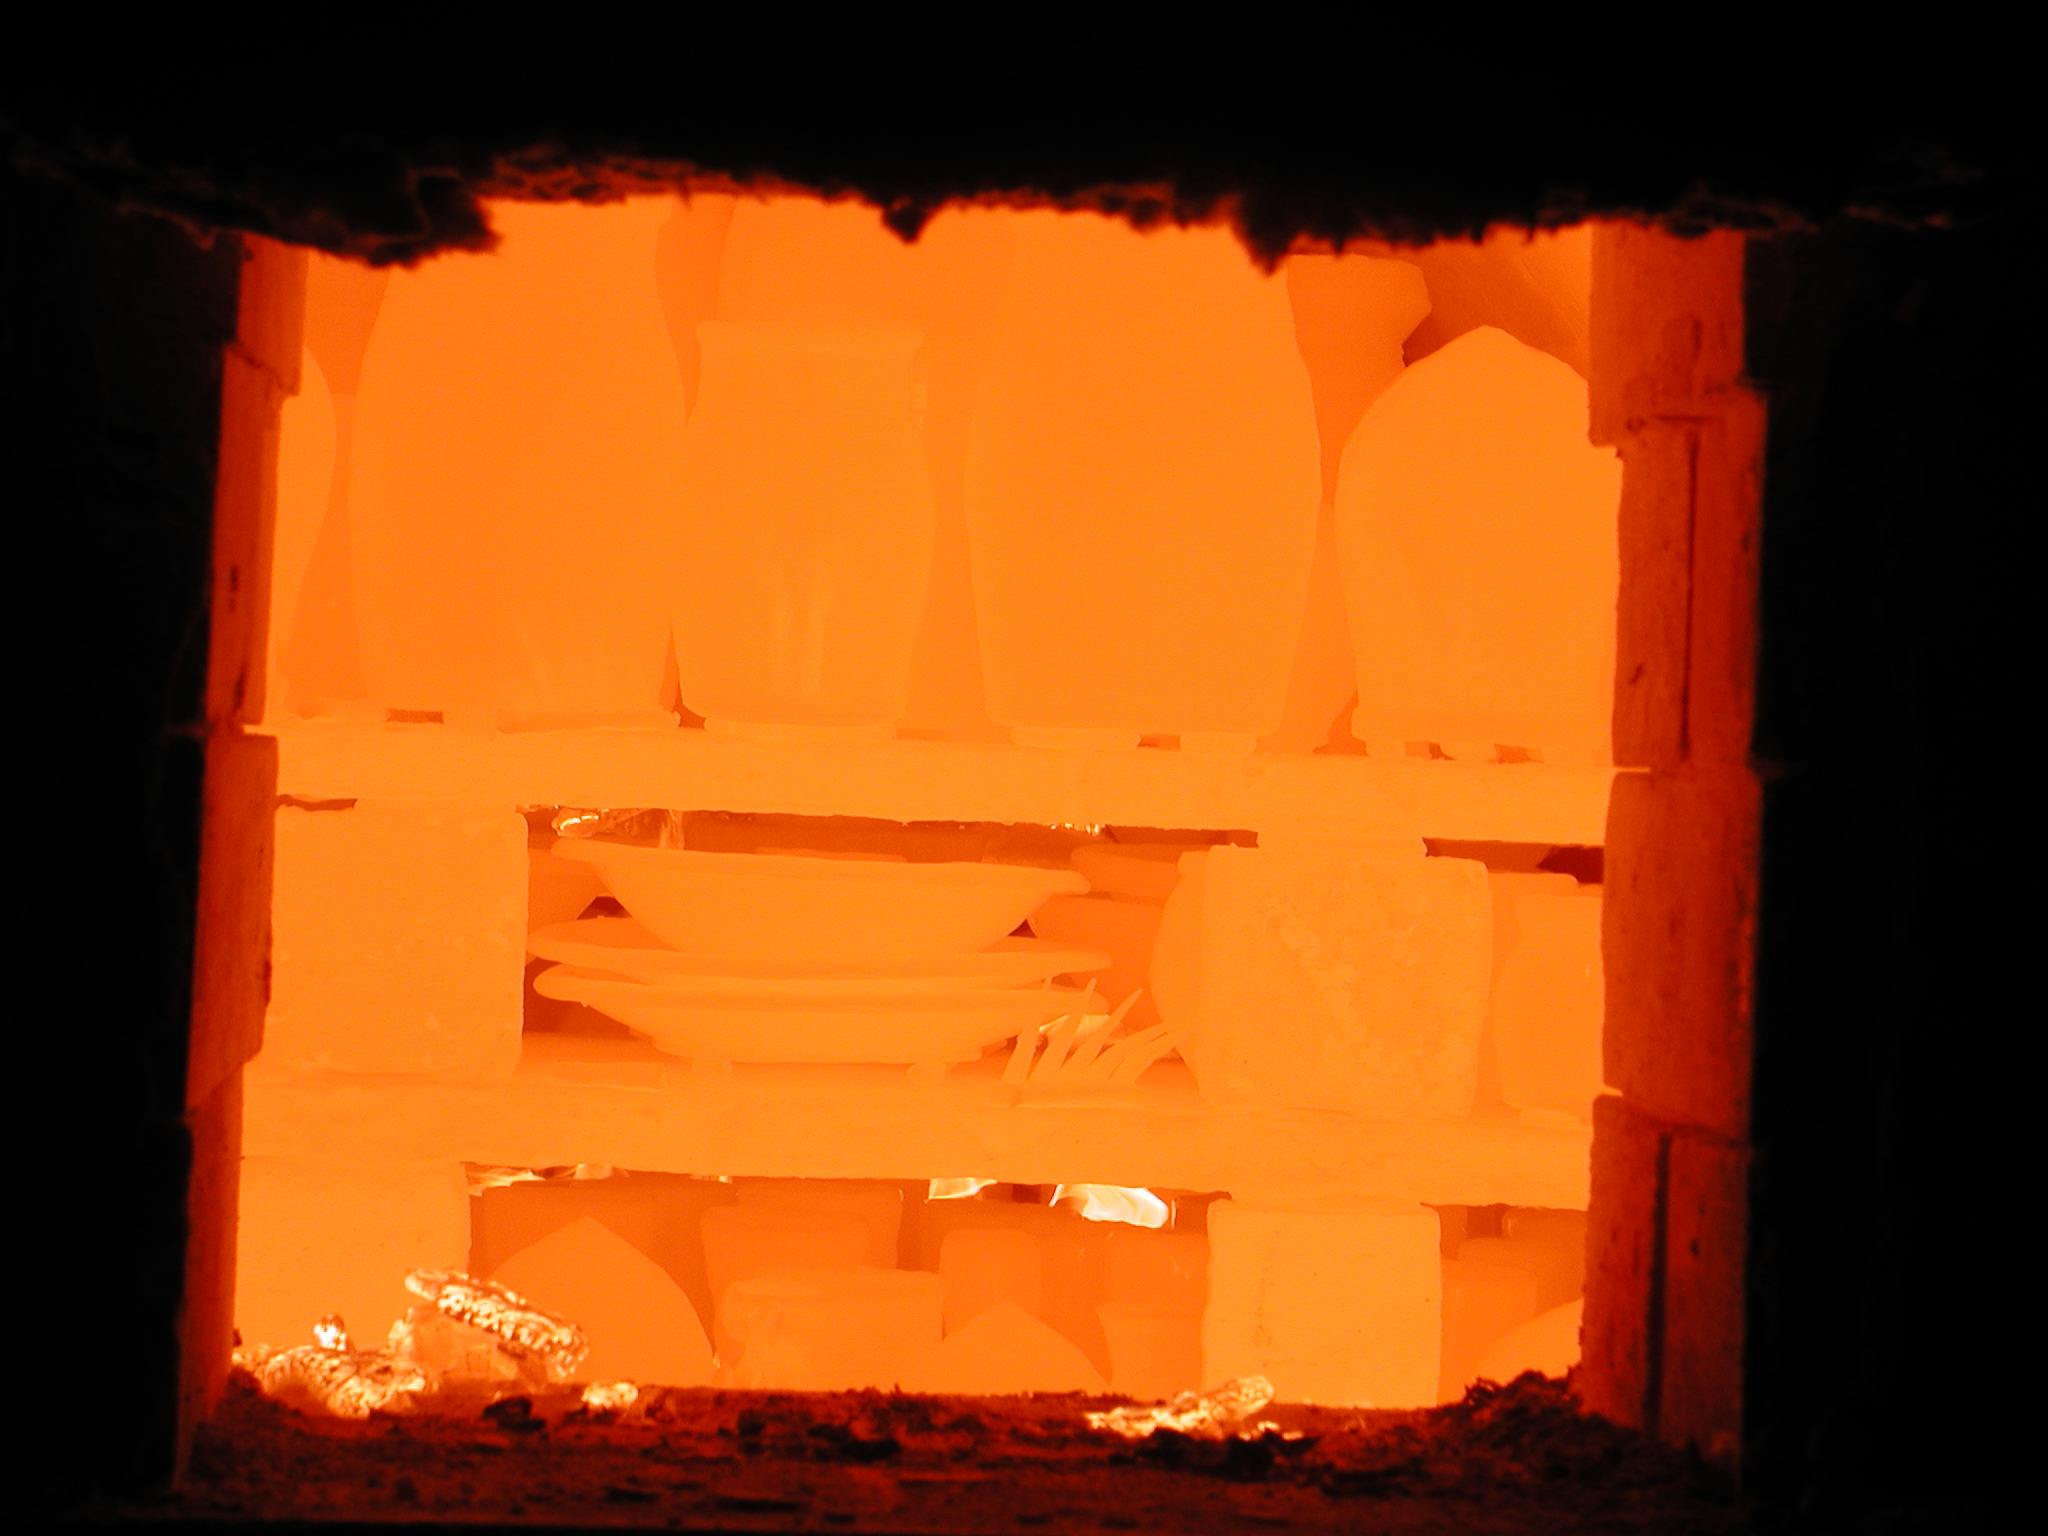 inside the kiln